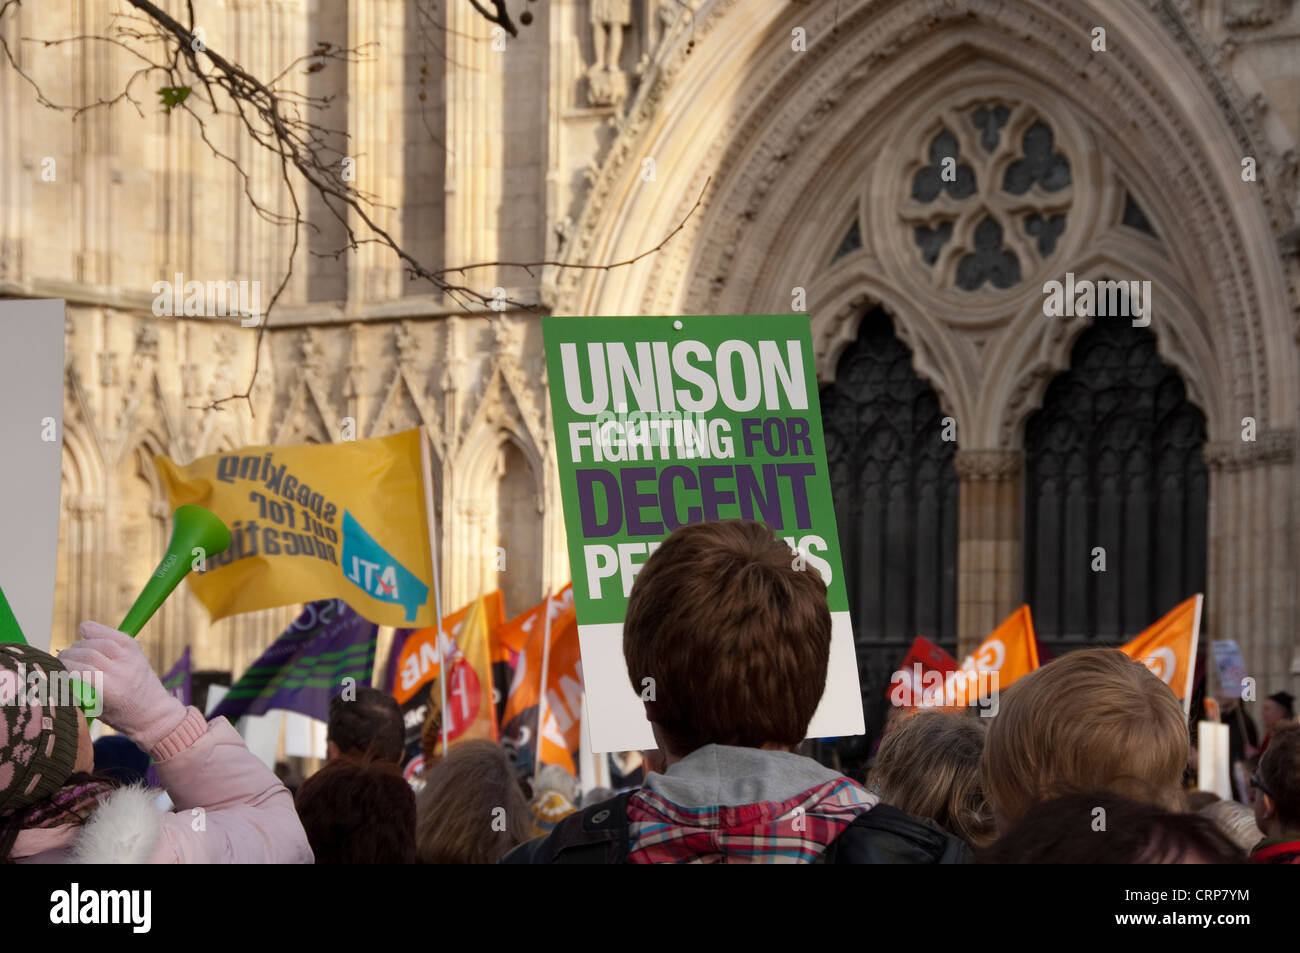 Members of UNISON trade union protesting for better pensions outside York Minster. - Stock Image